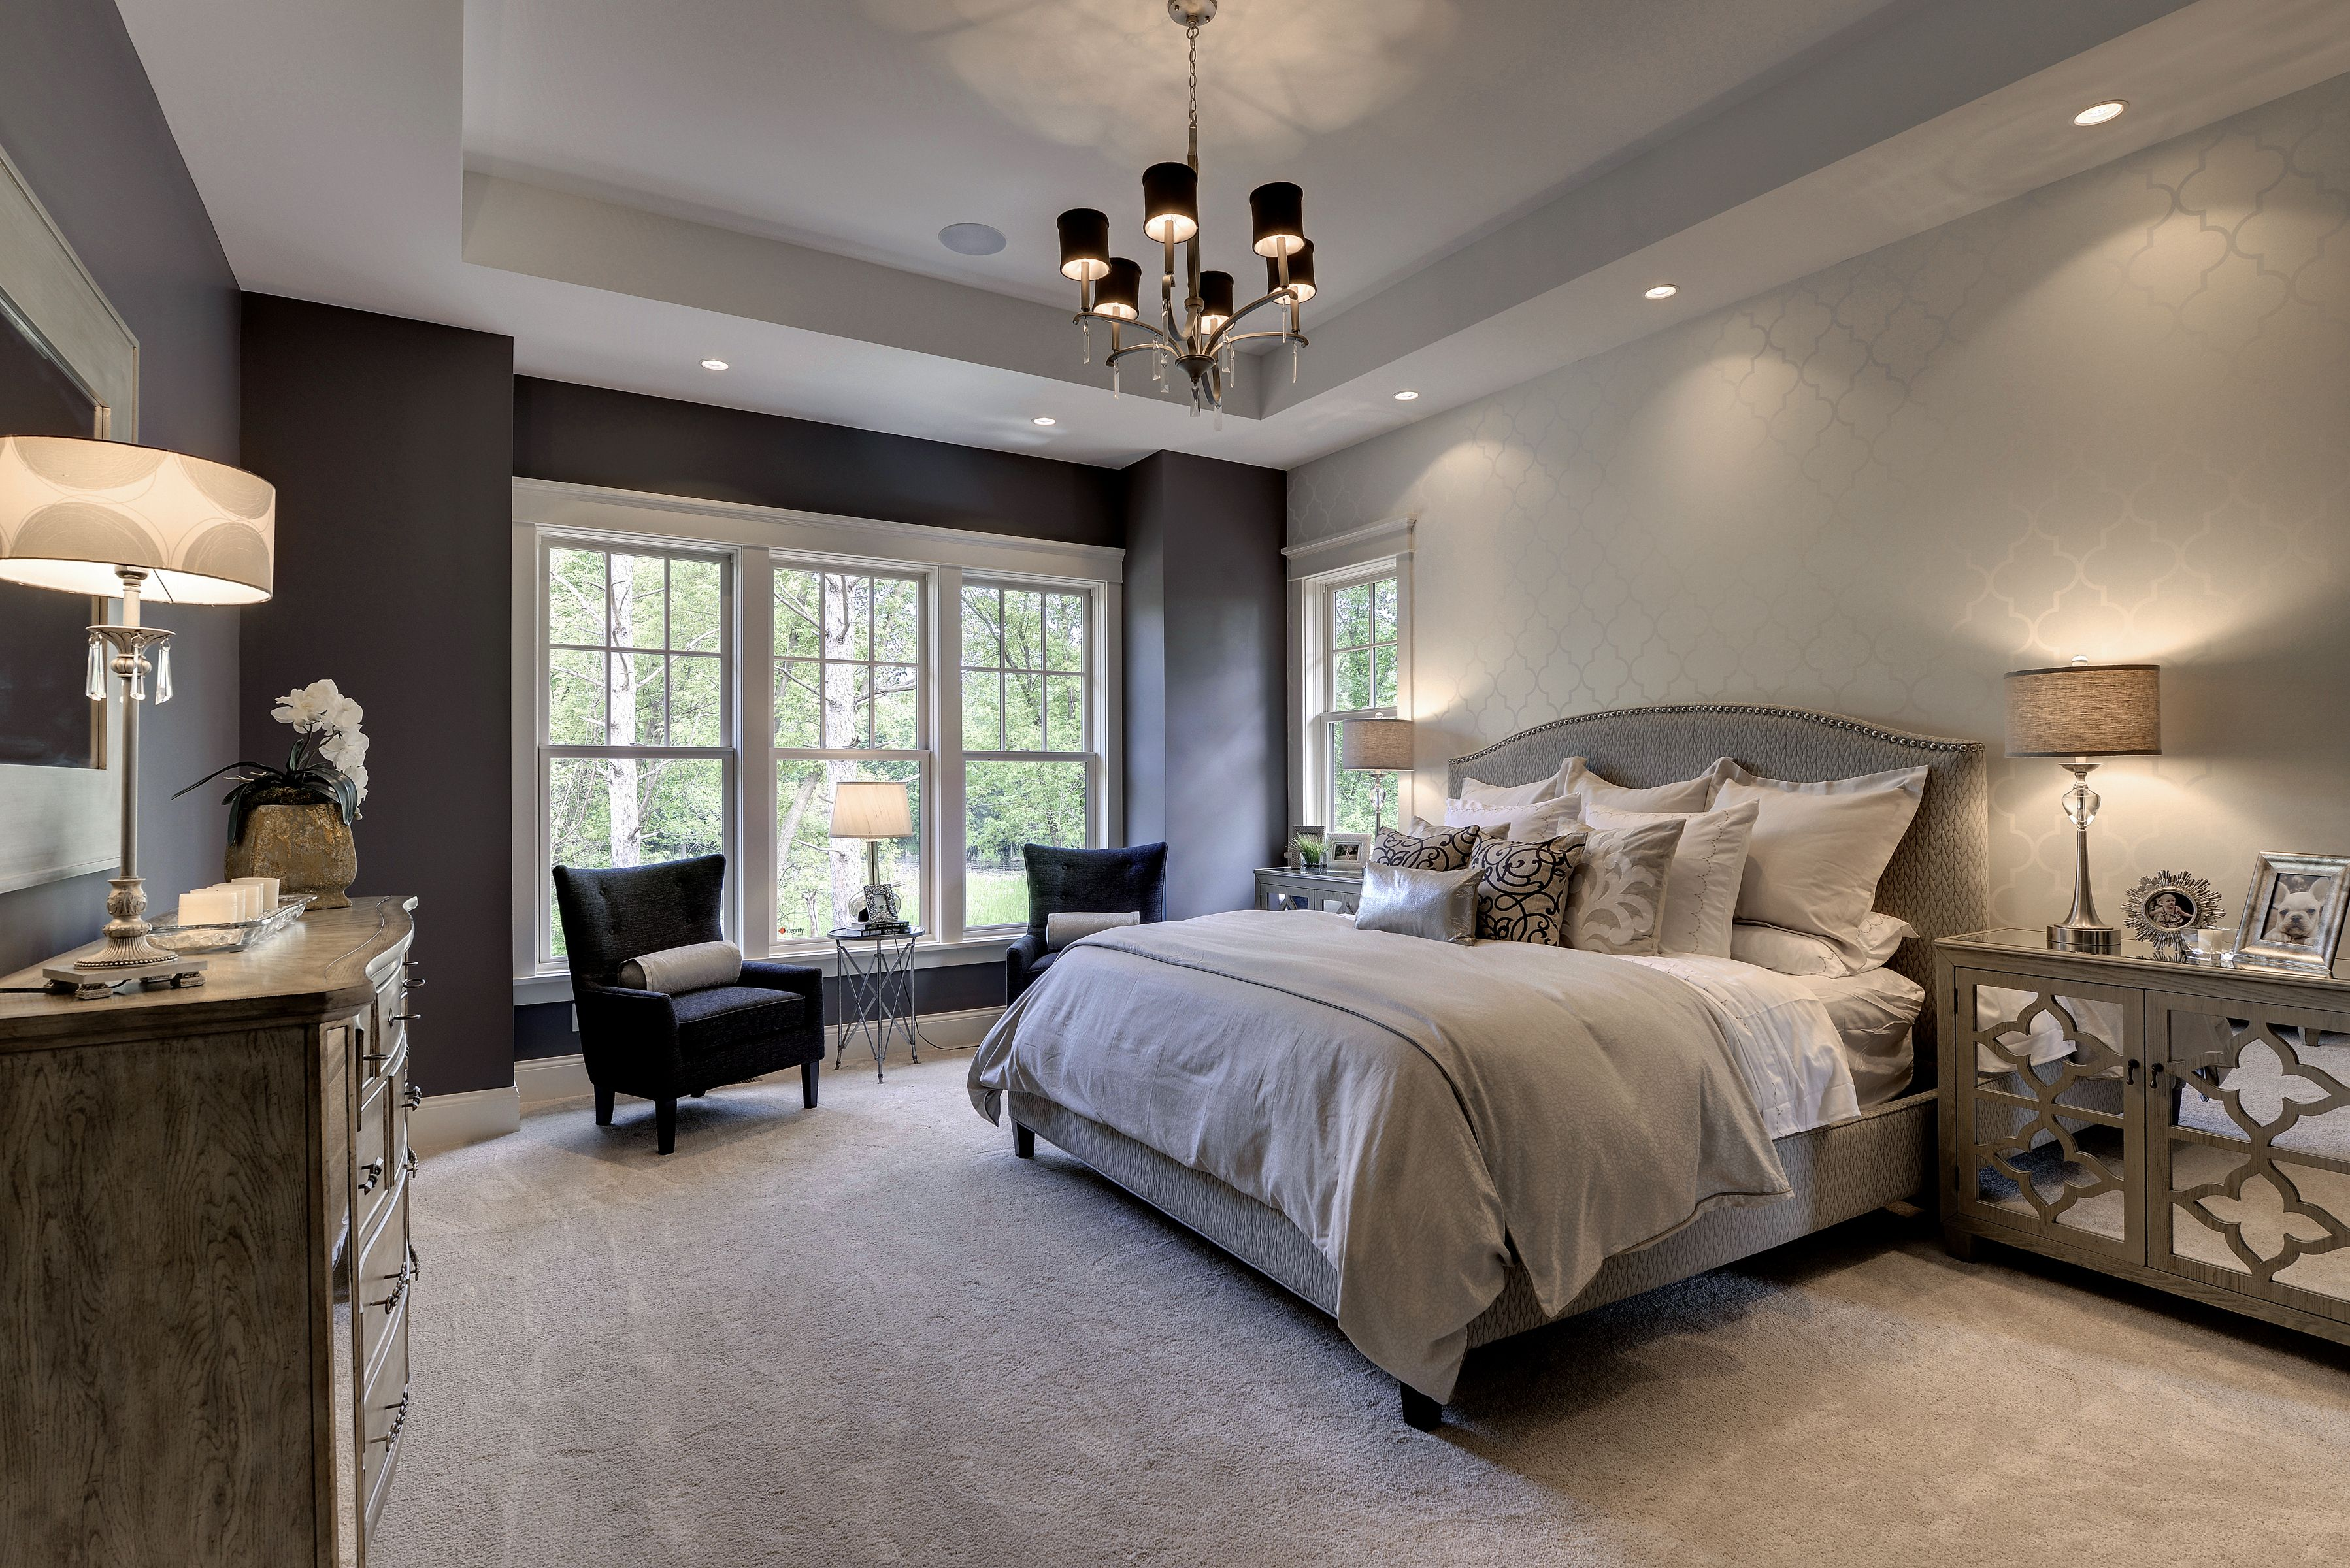 professionally staged by ambiance at home master on dreamy luxurious master bedroom designs and decor ideas id=79771